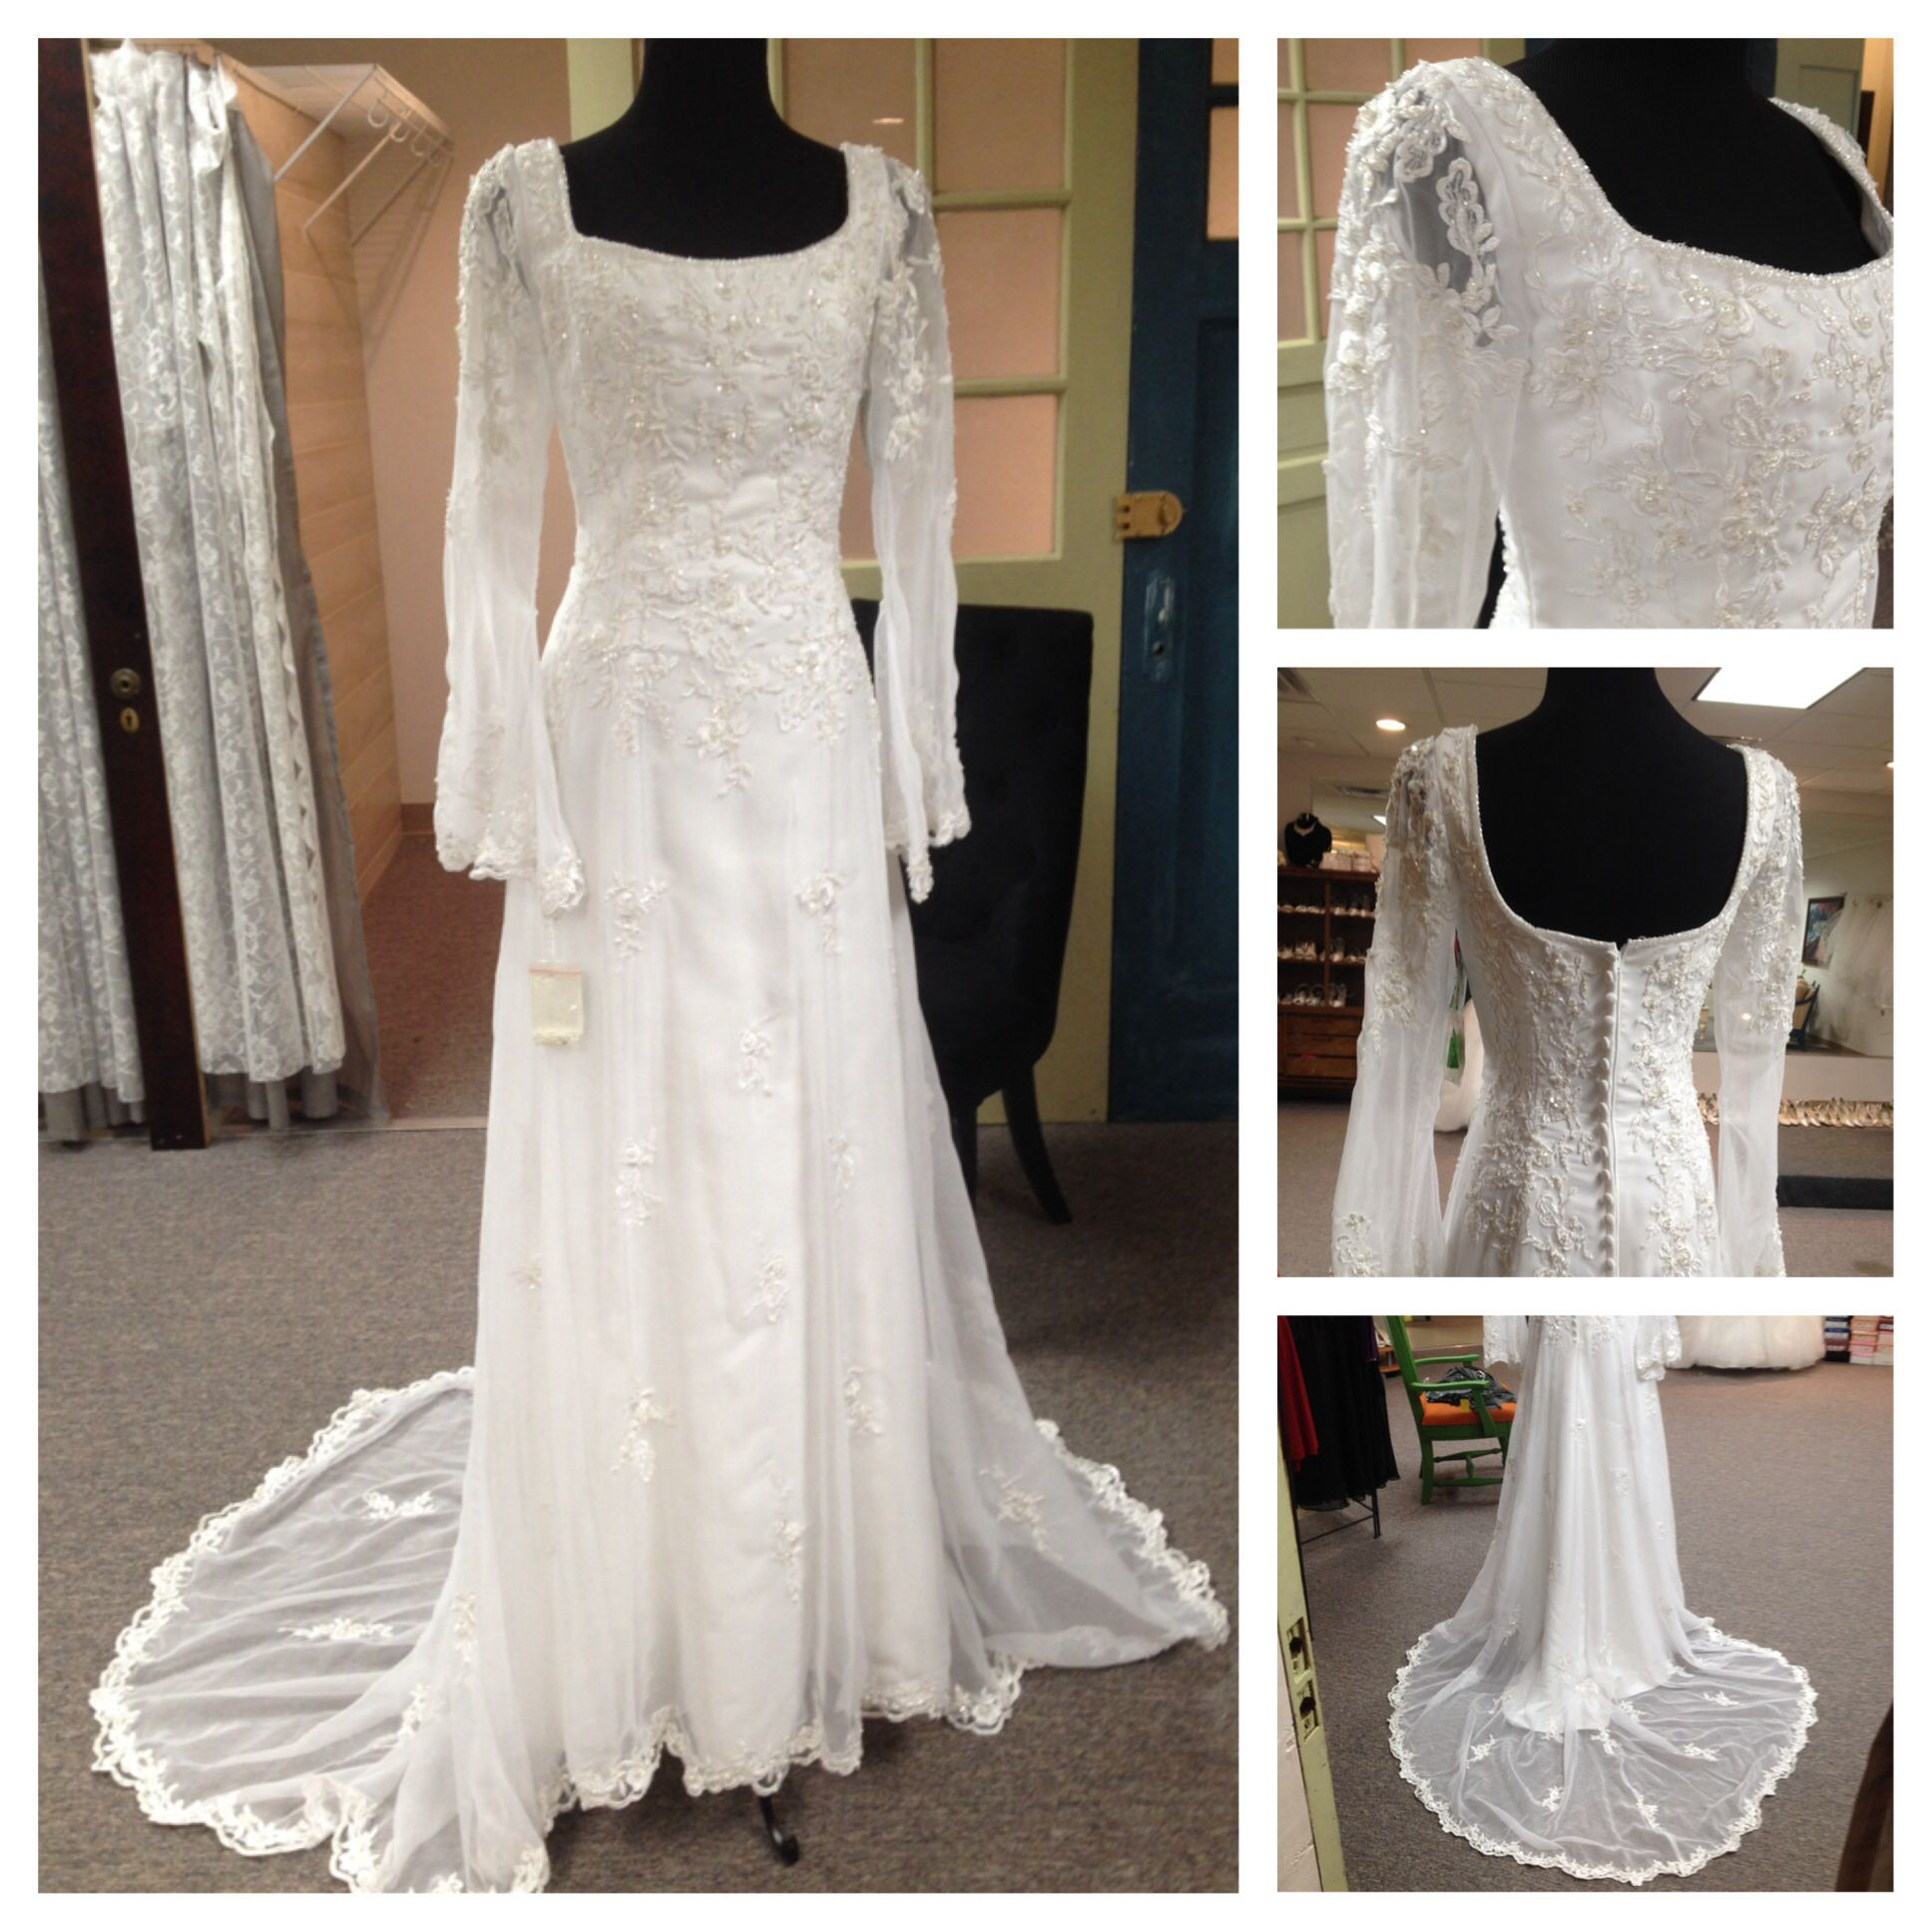 By Full Circle Wedding Consignment Shop On Wedding Gowns In Store